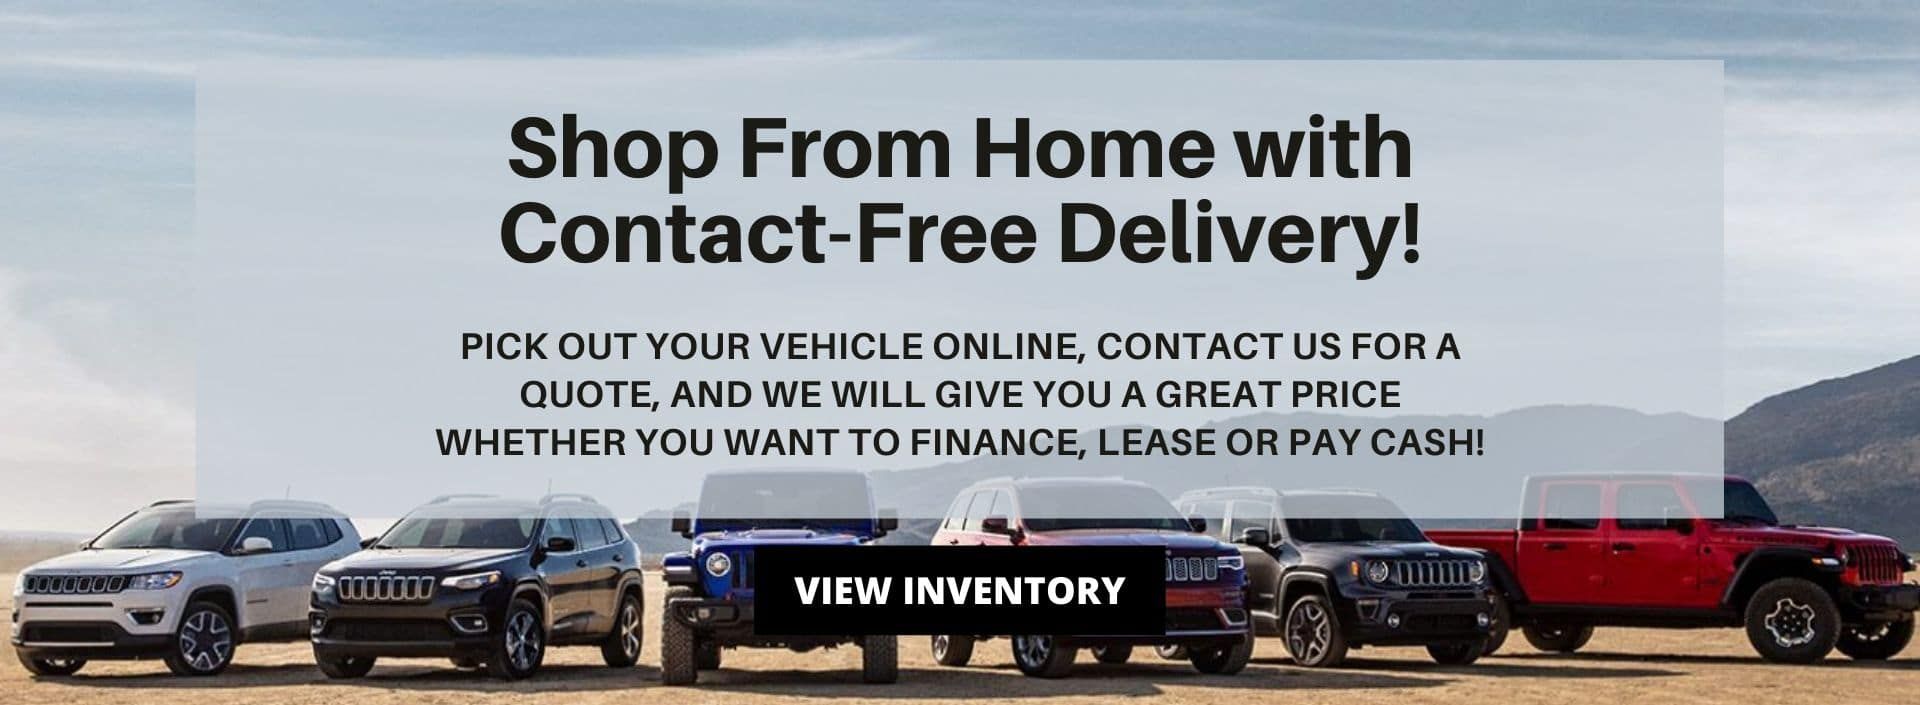 Offering Contact Free Home Delivery